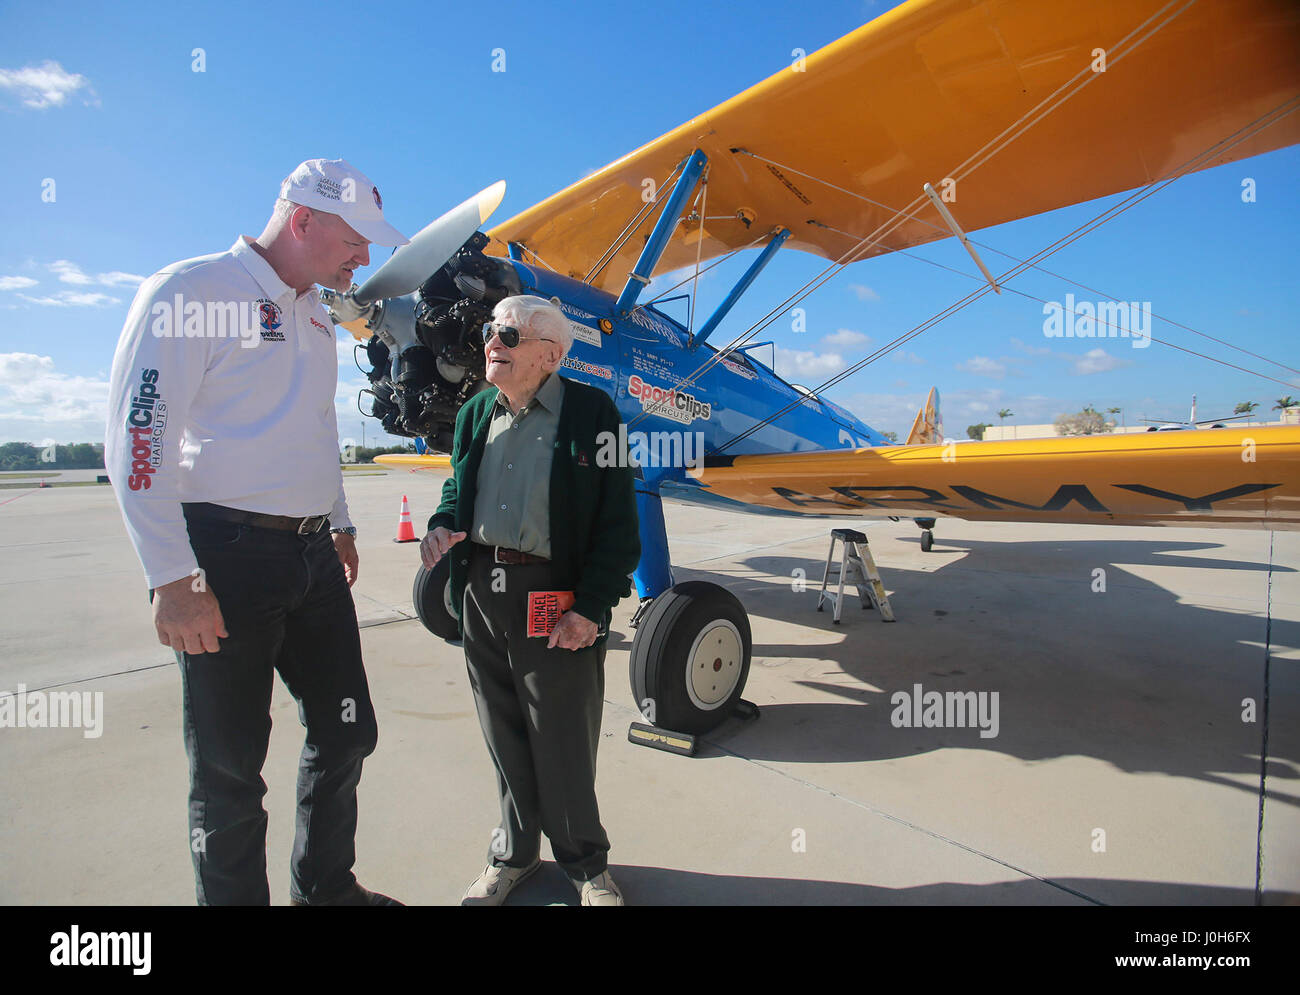 Florida, USA. 13th Apr, 2017. Duane Webster, age 95, talks with Darryl Fisher (Founder - President - Pilot of Ageless Stock Photo